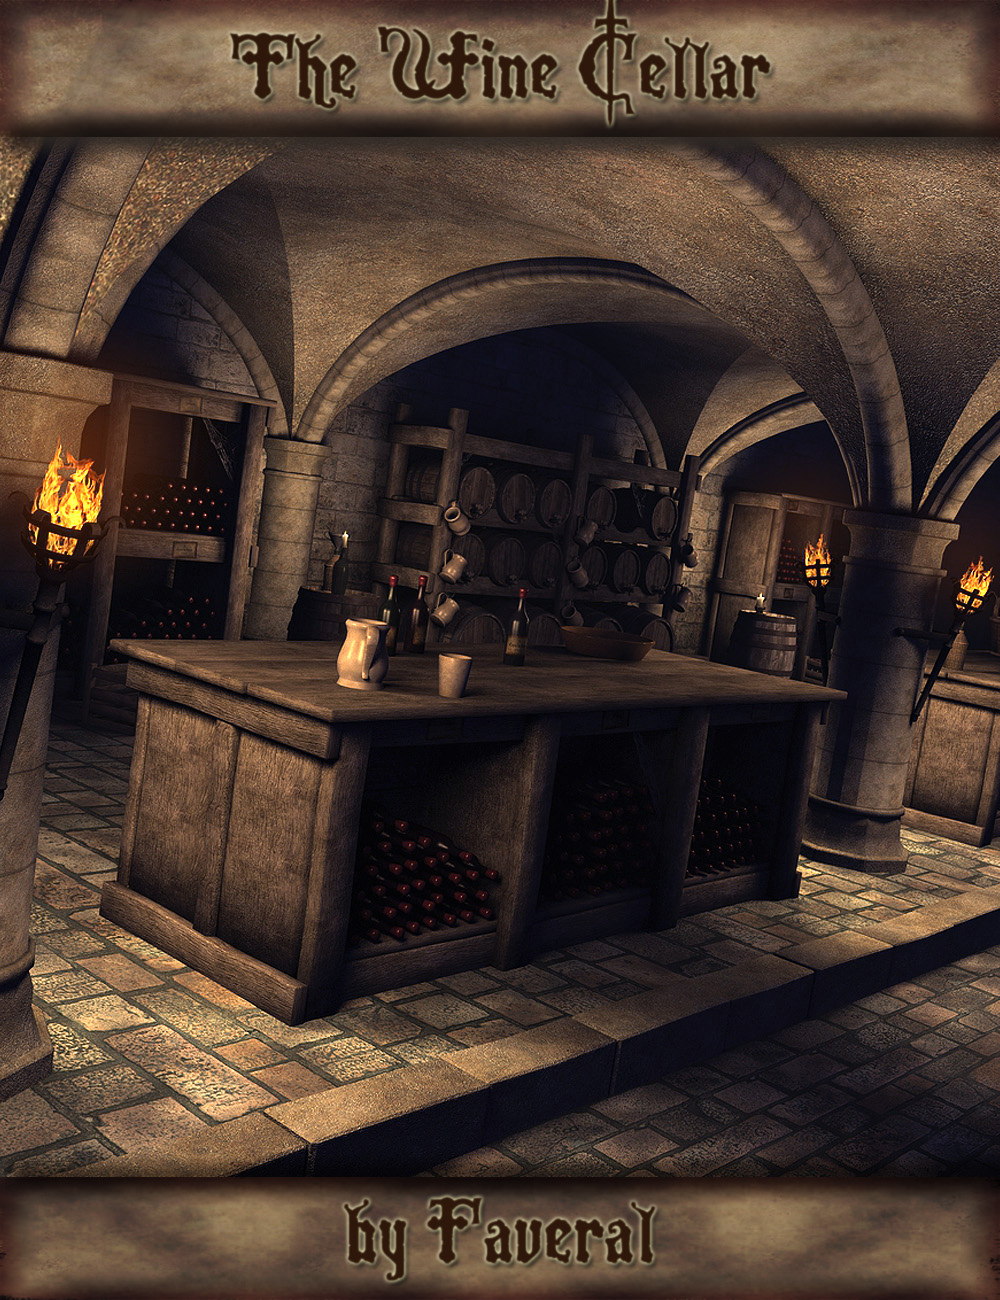 Faveral's Wine Cellar by: Faveral, 3D Models by Daz 3D